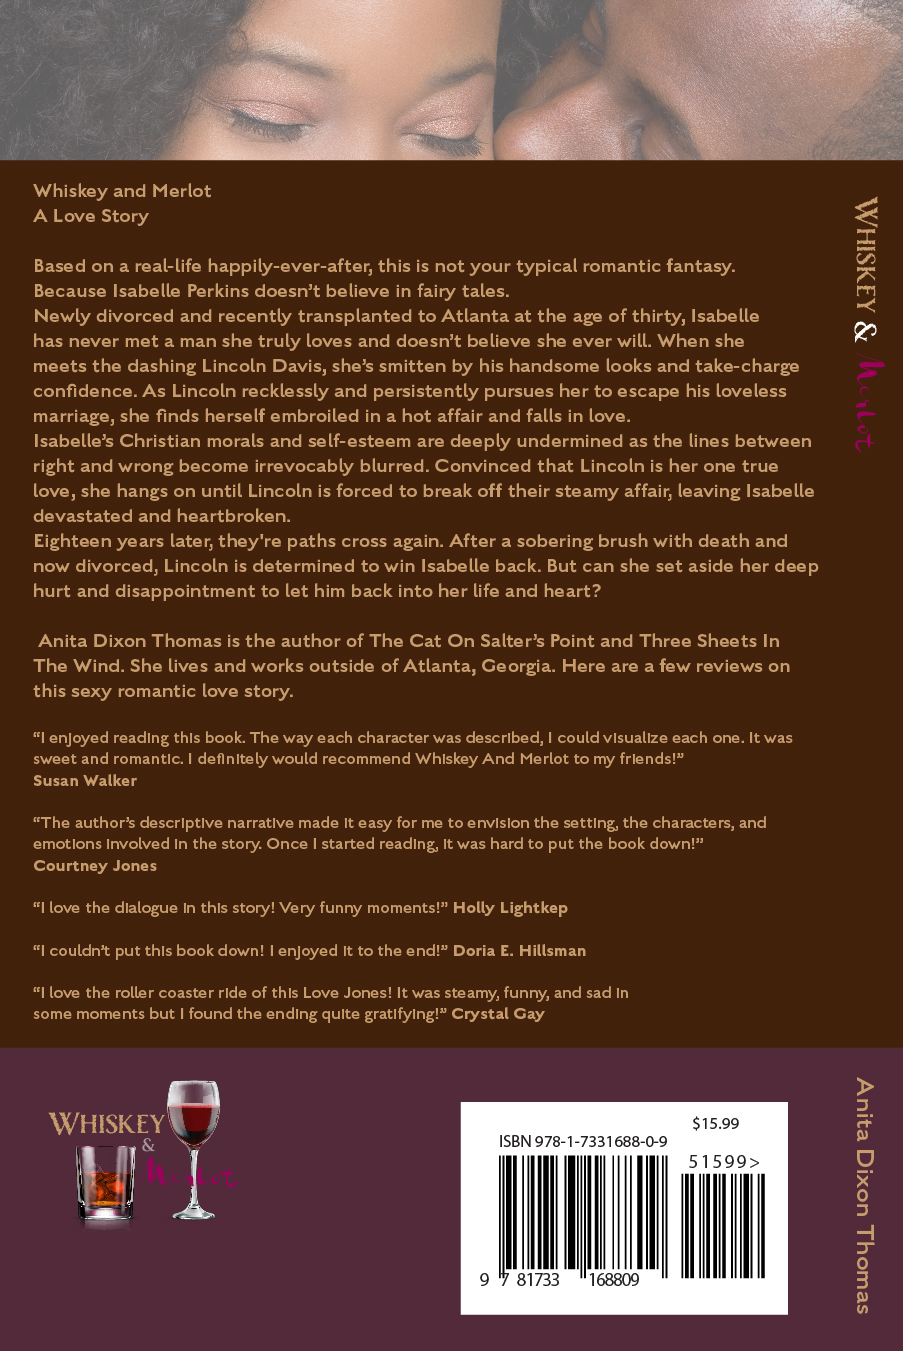 Reviews of Whiskey And Merlot On Back Cover